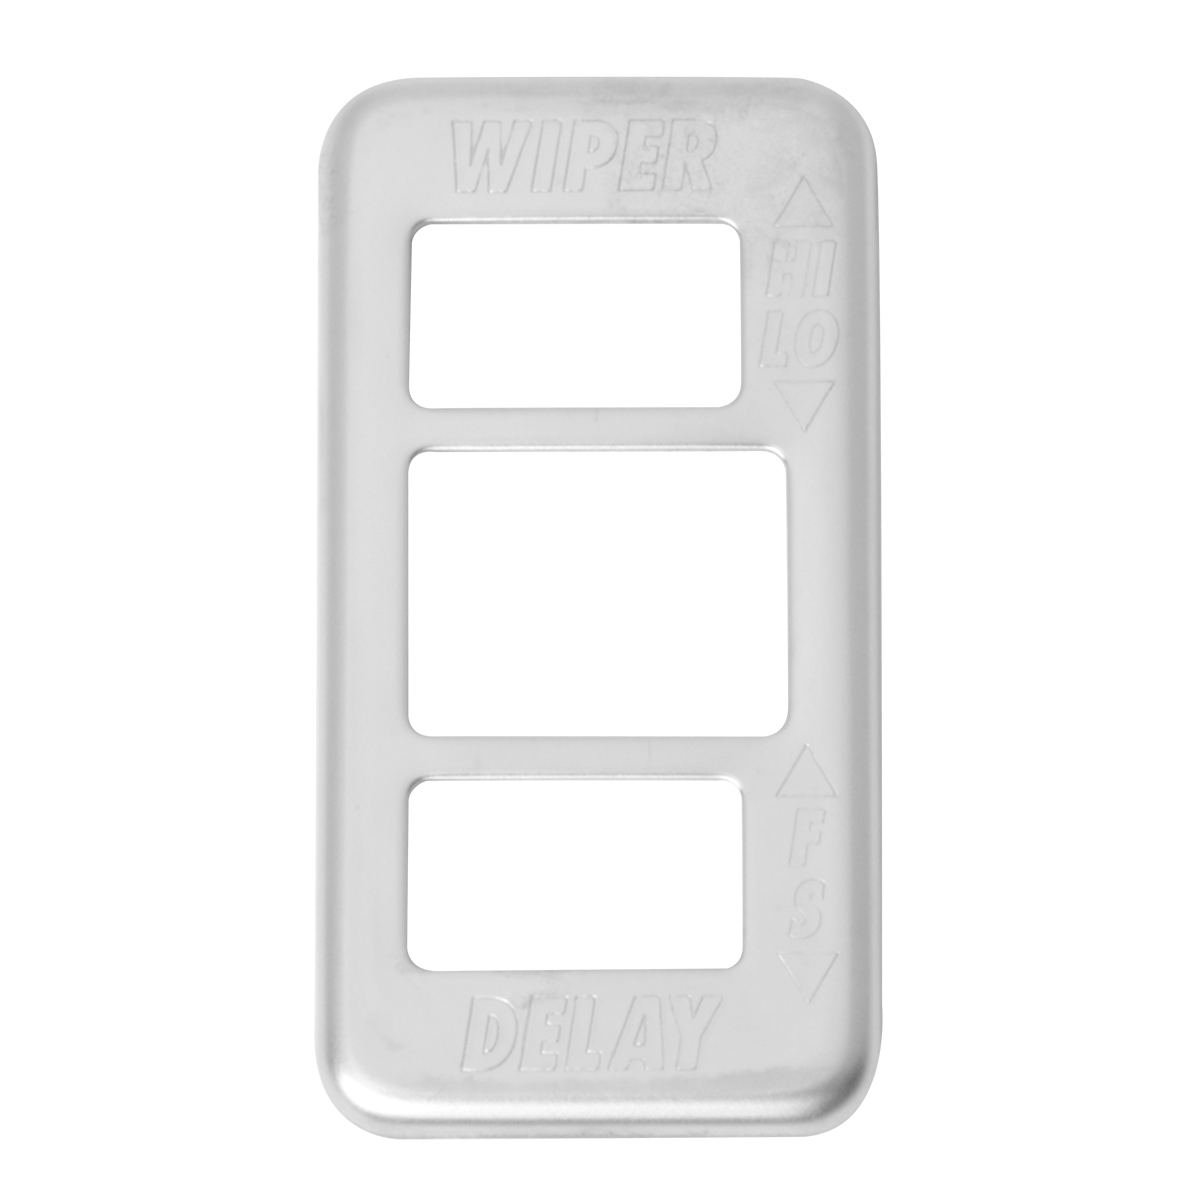 #68883 Switch Guard Wiper/Washer Plate